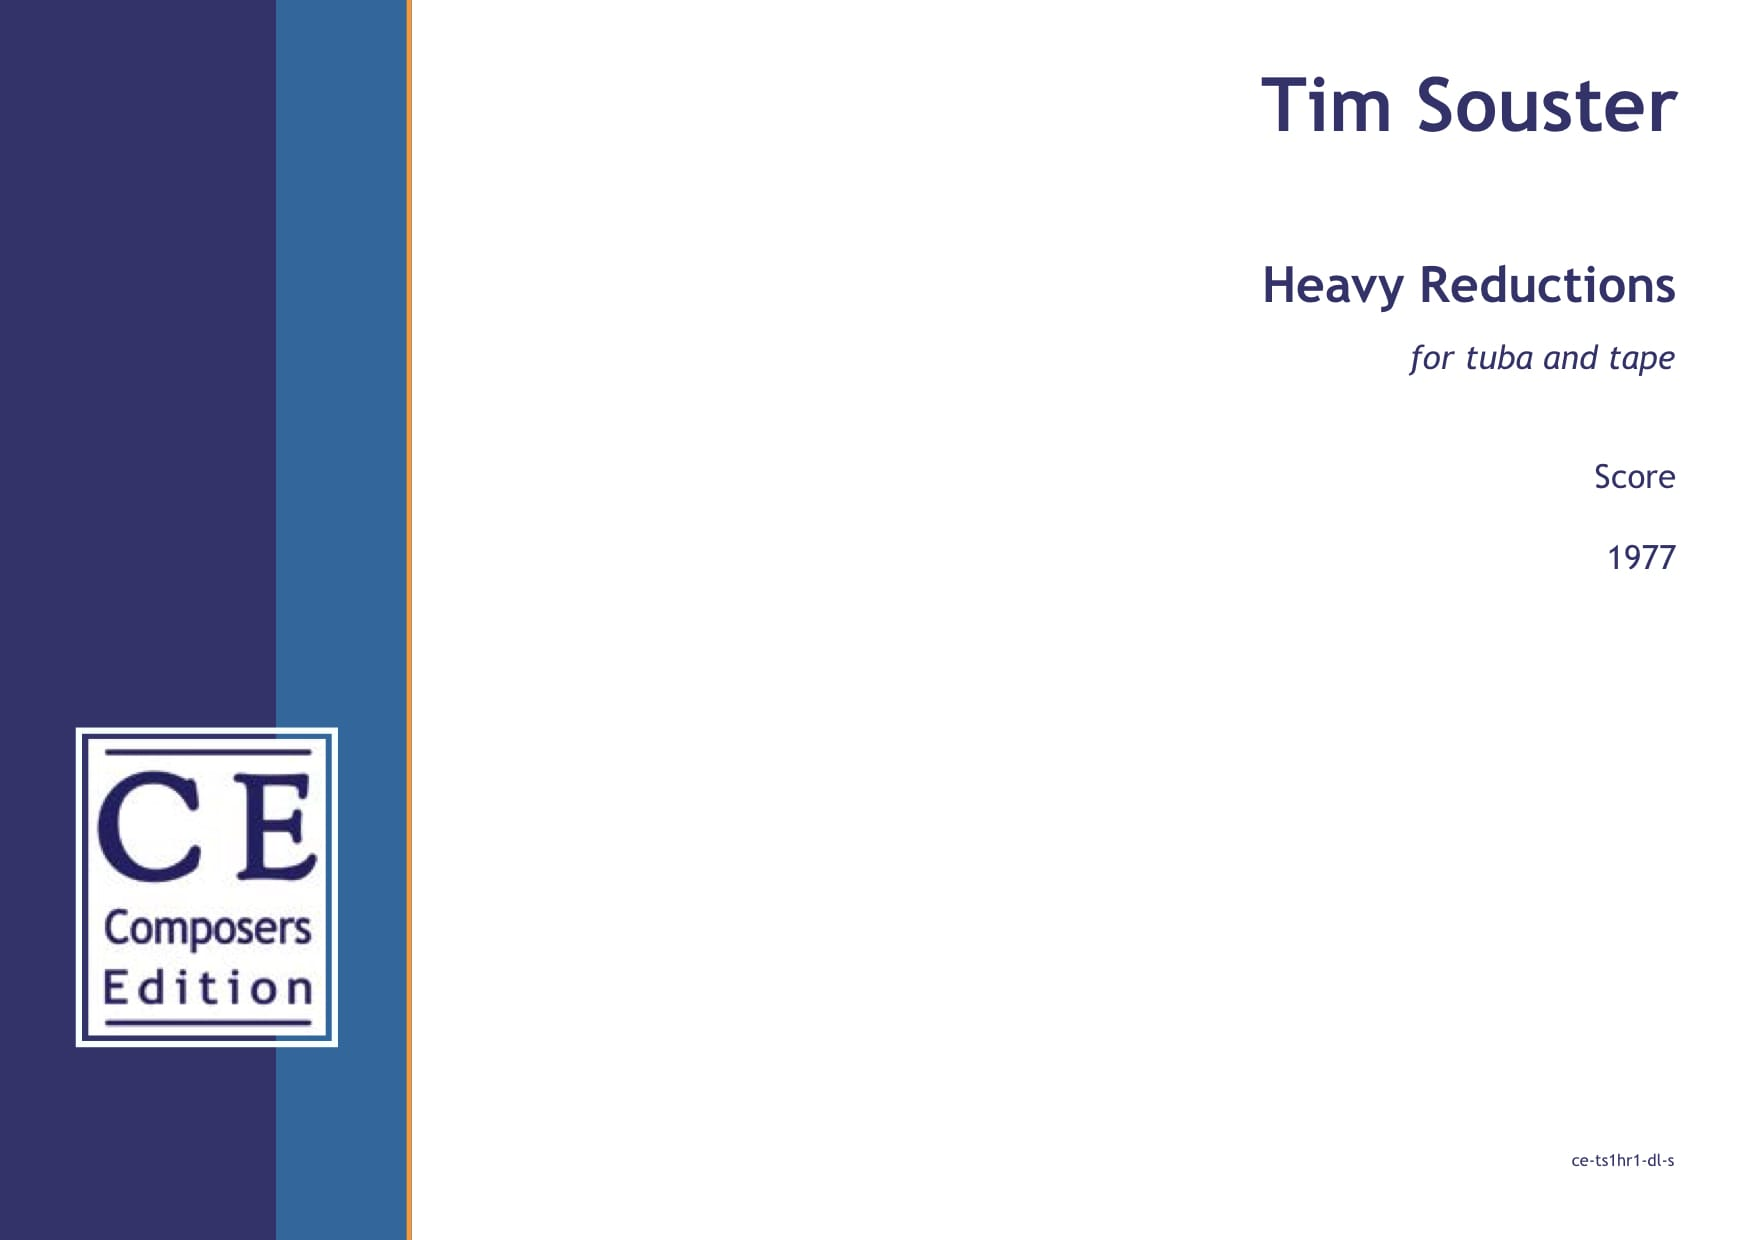 Tim Souster: Heavy Reductions for tuba and tape